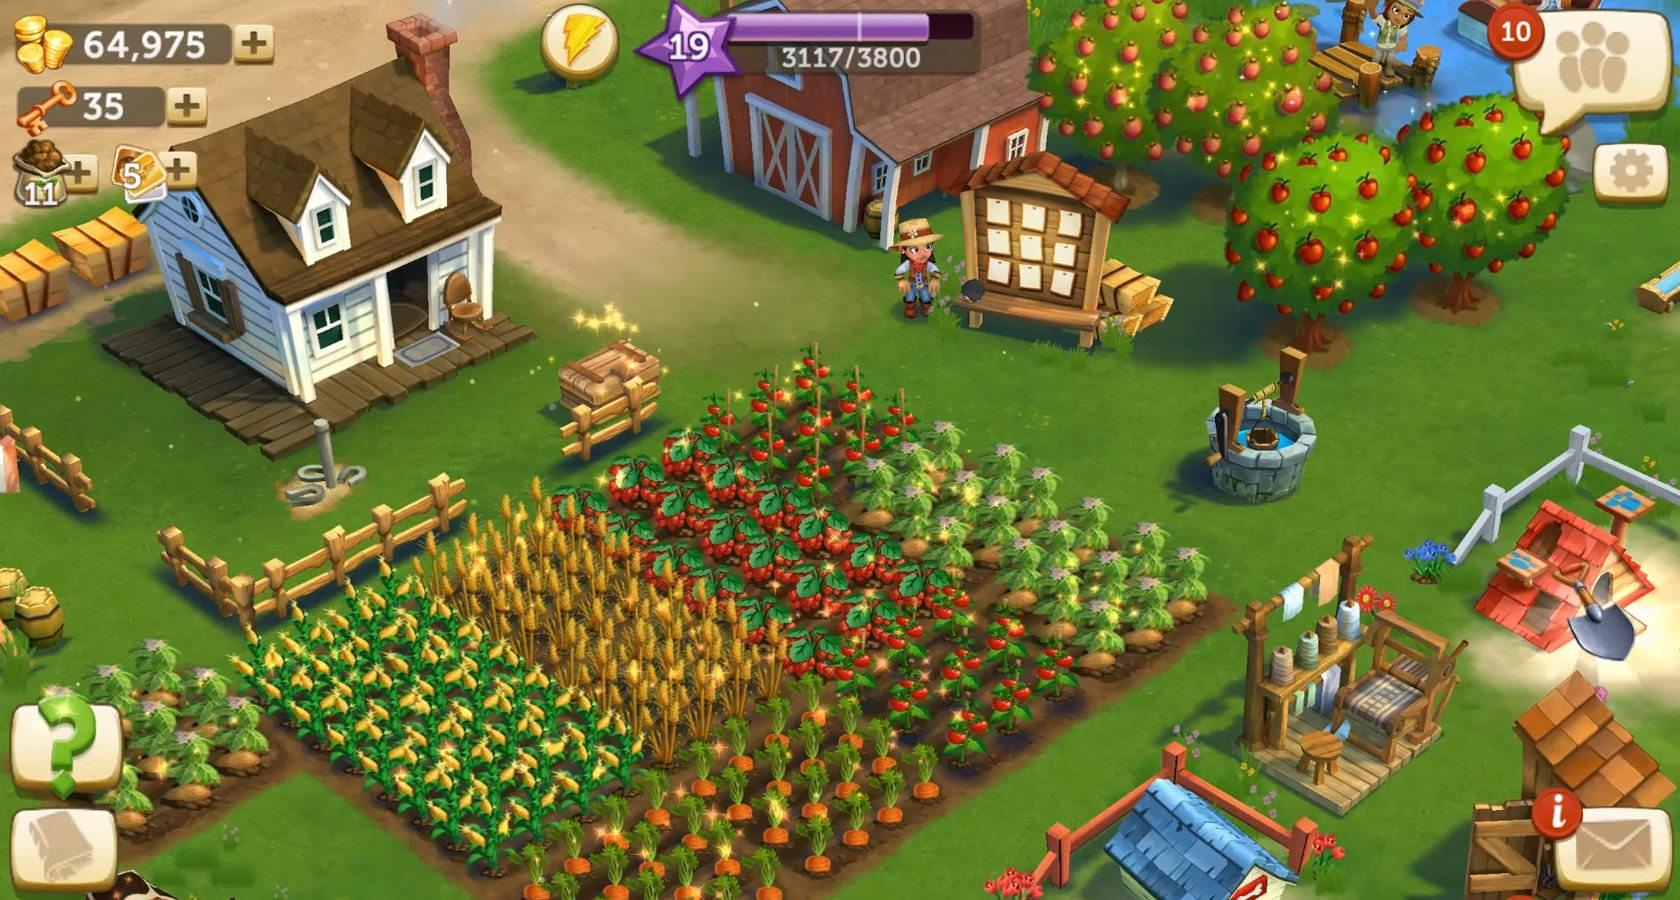 Gamification Design of custom Farmville farms